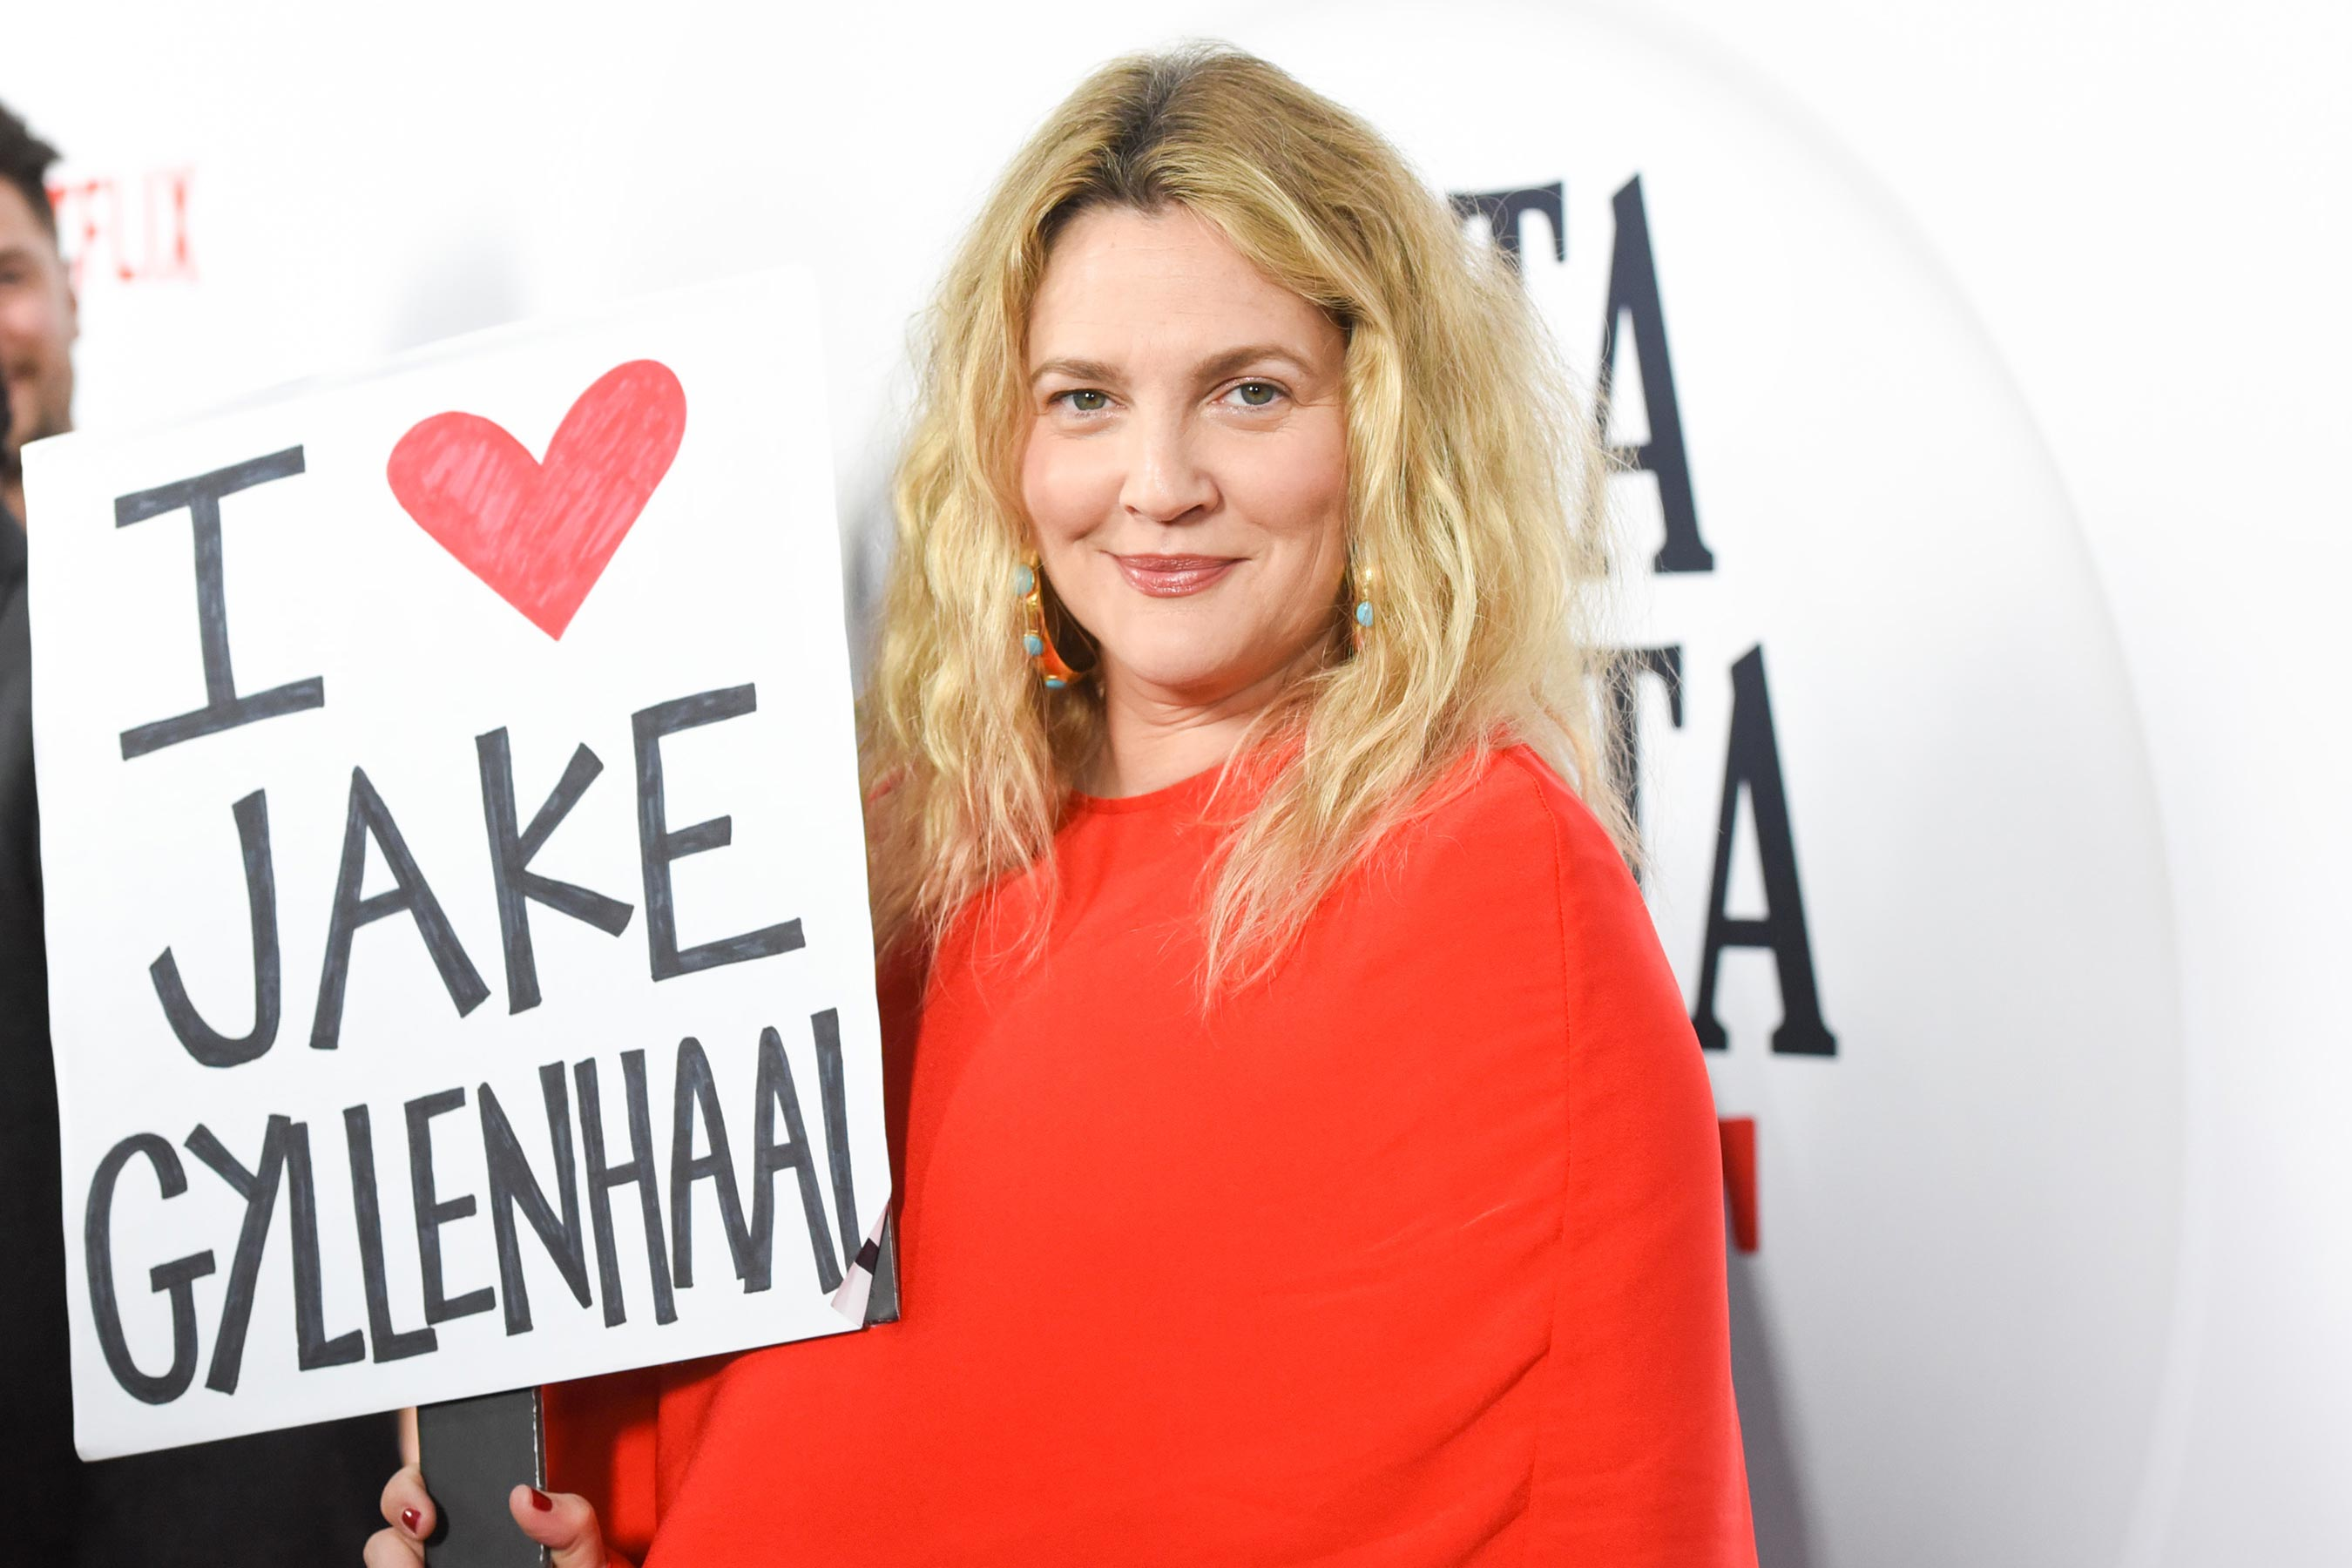 Drew Barrymore makes amends for ranking Jake Gyllenhaal as her least talented costar on 'Late Late Show'